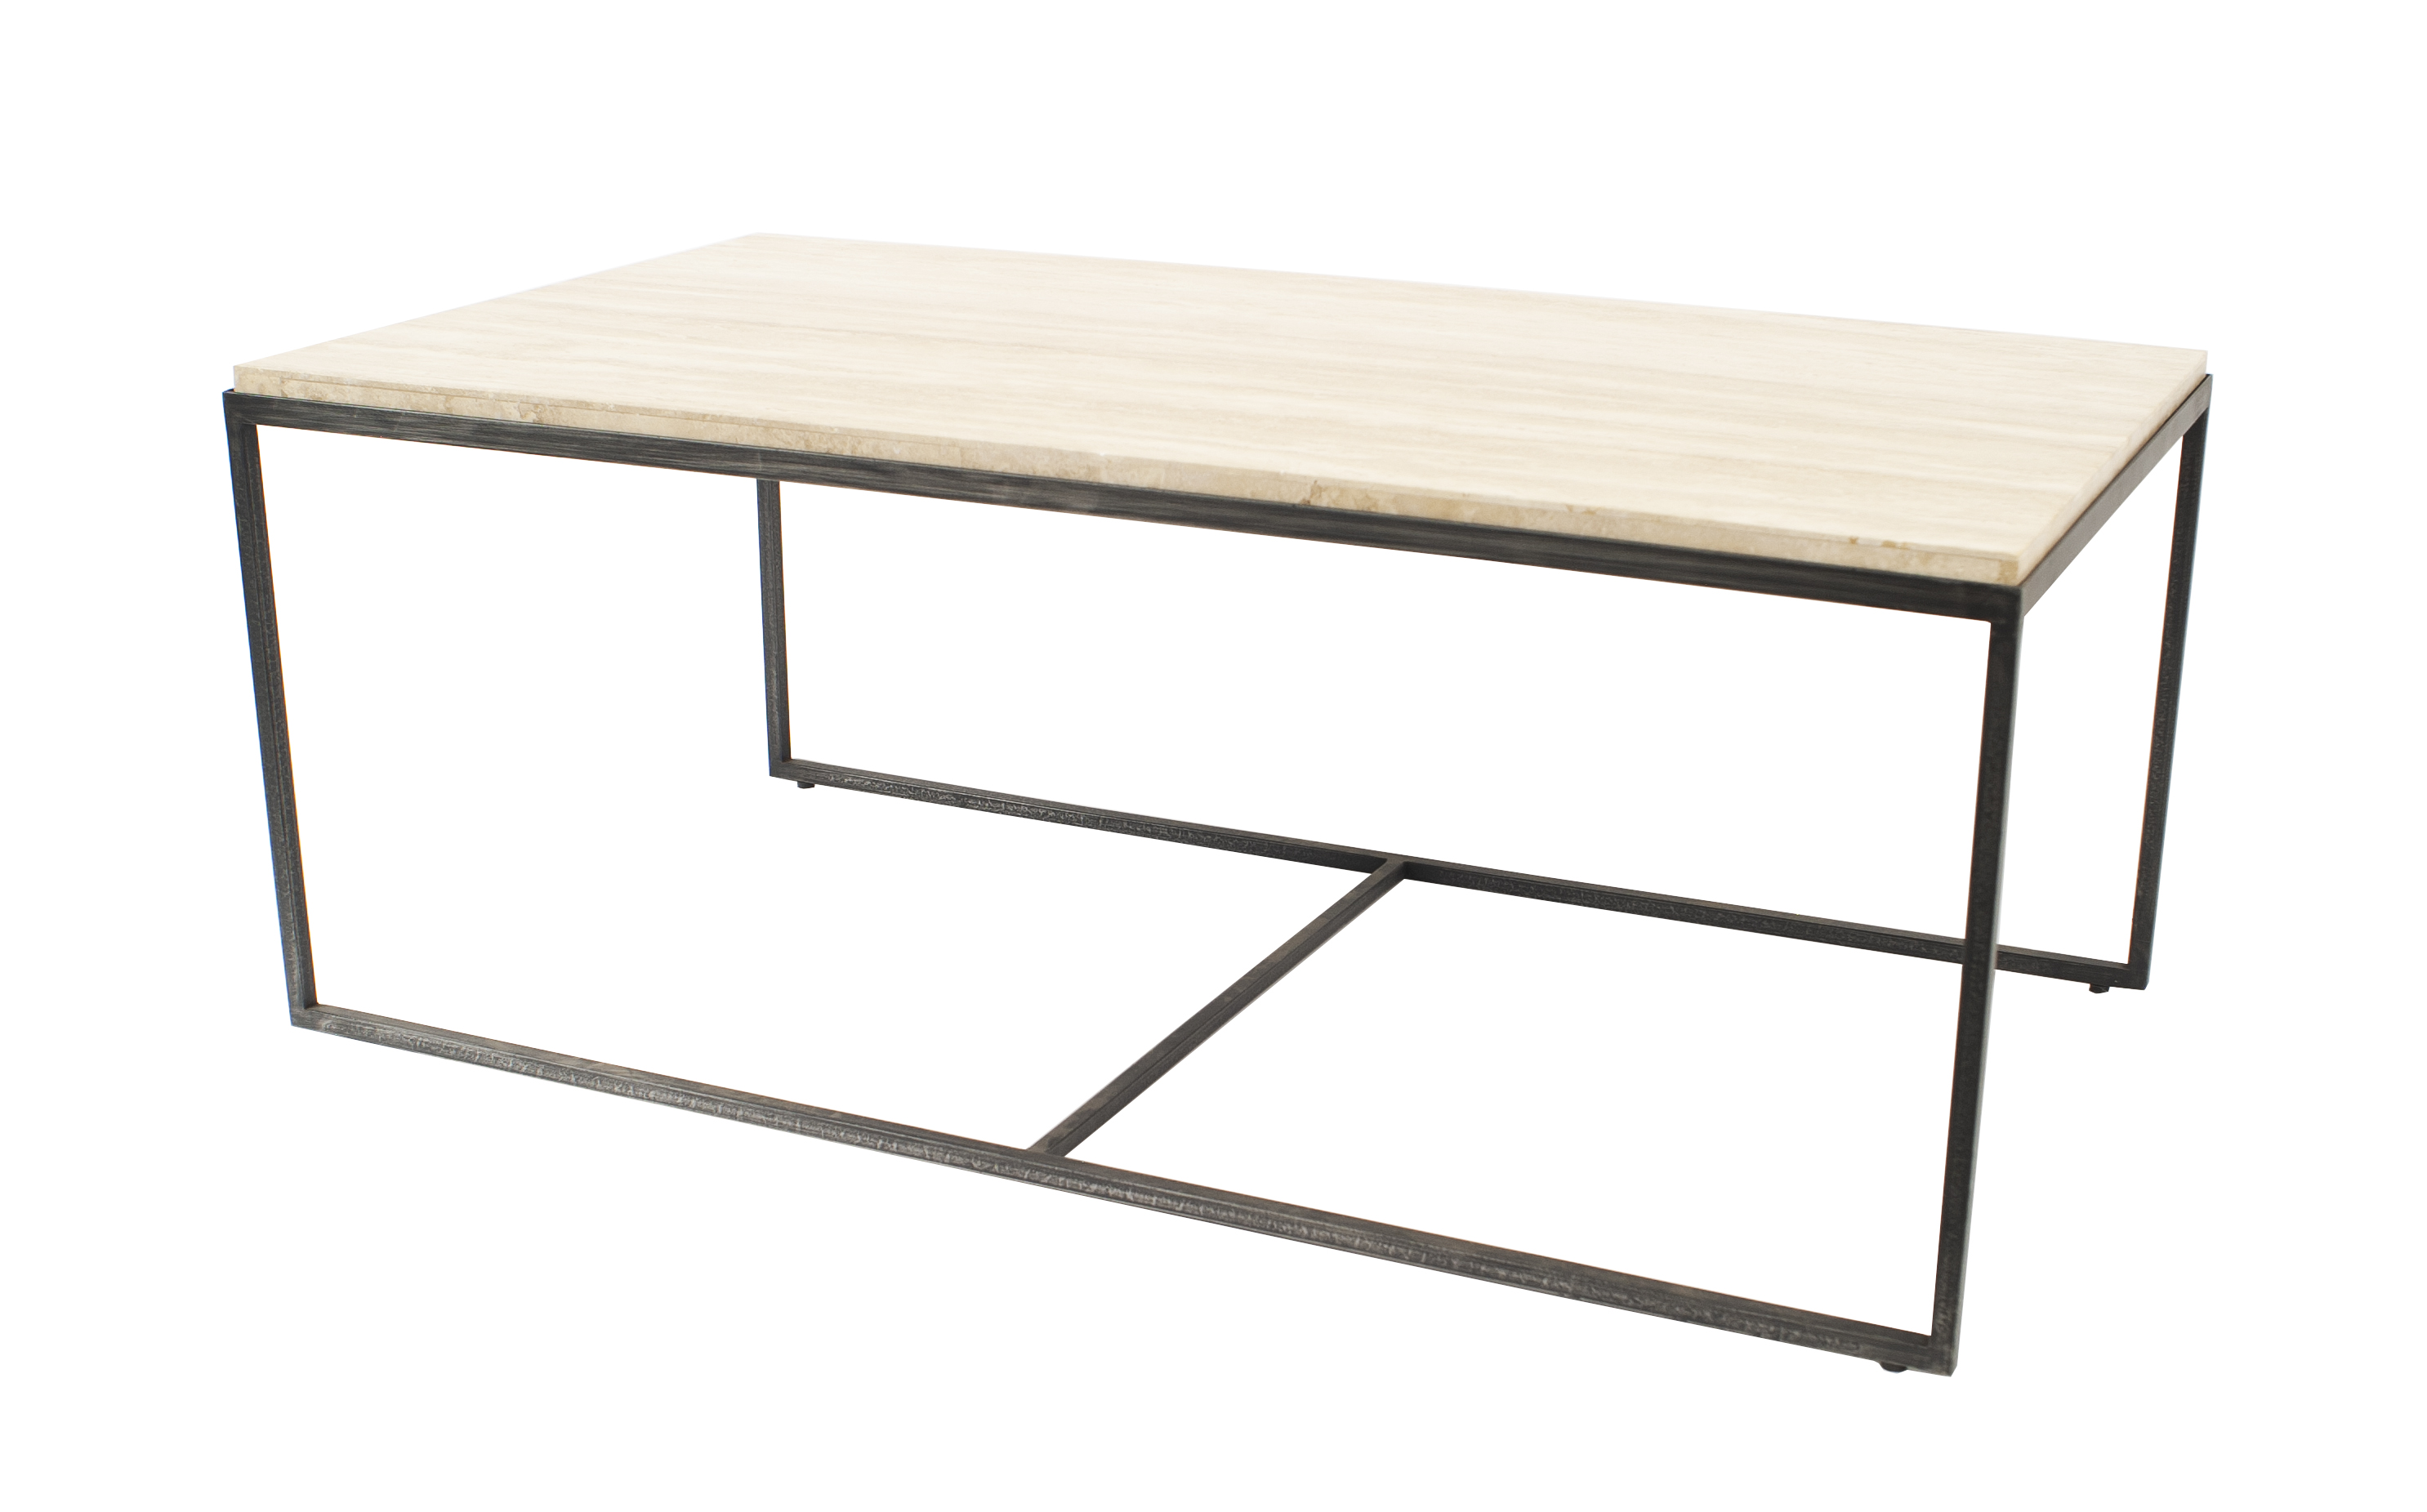 Contemporary rectangular coffee table with a beige travertine top ...